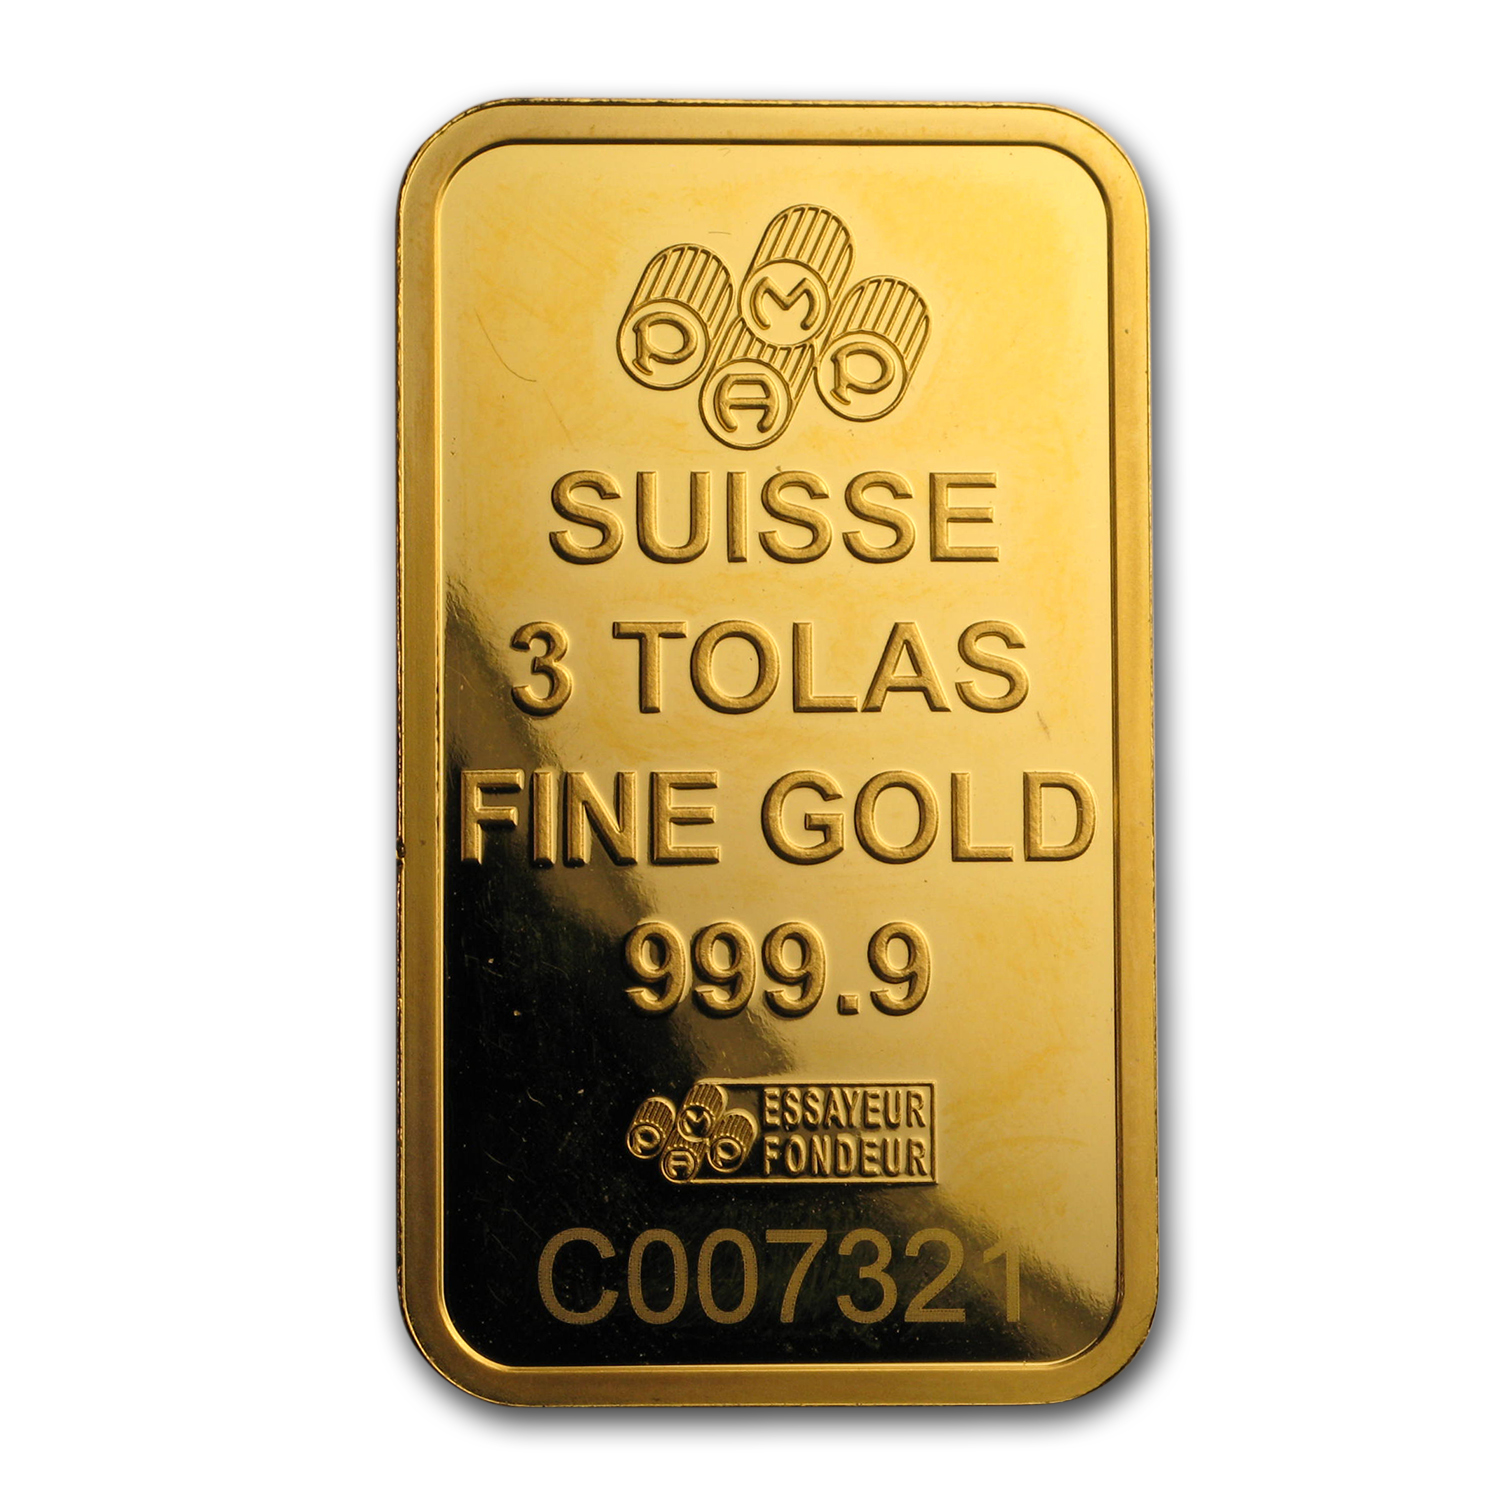 3 Tolas Gold Bar - Secondary Market (1.125 oz)